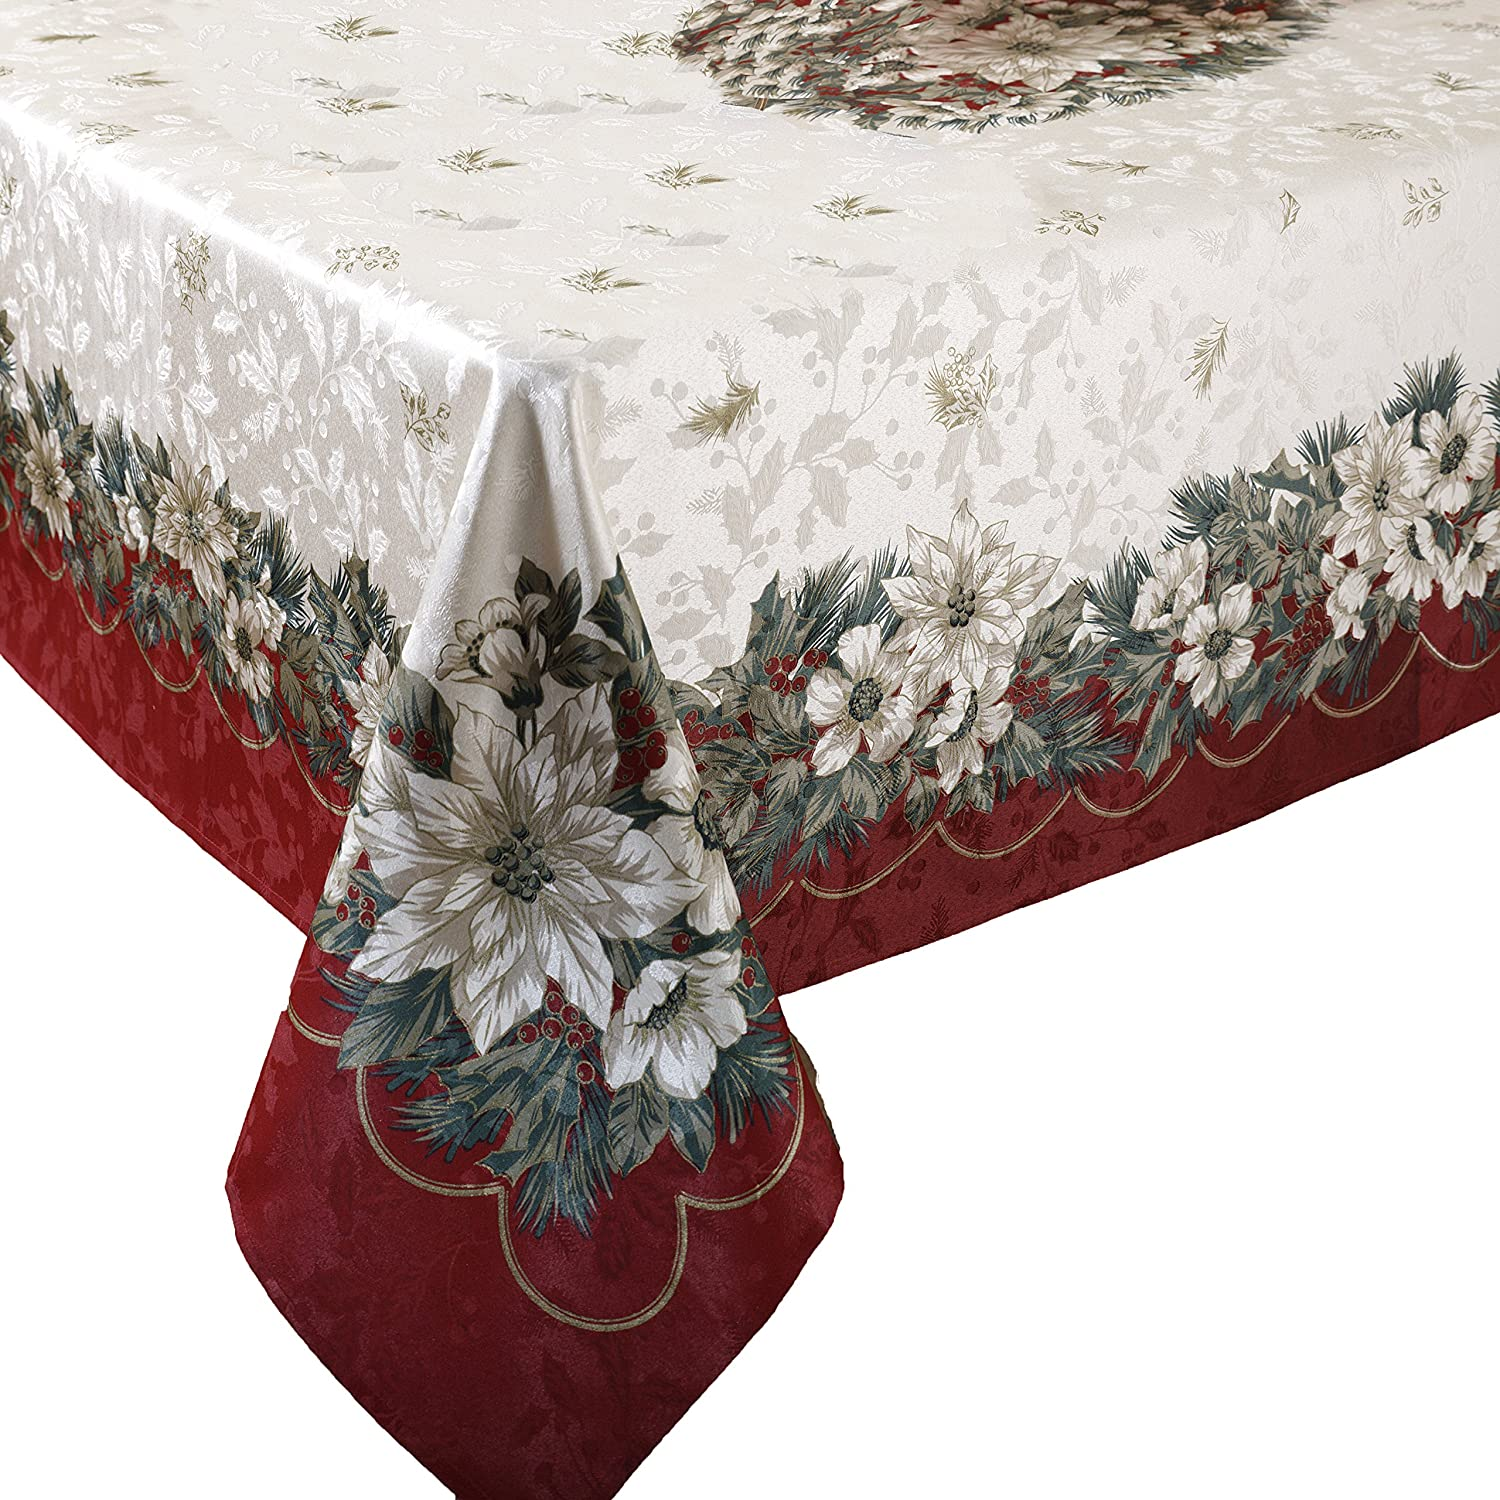 Merveilleux Amazon.com: Benson Mills Christmas Noel Printed Tablecloth, Size  60 Inch By 84 Inch: Home U0026 Kitchen